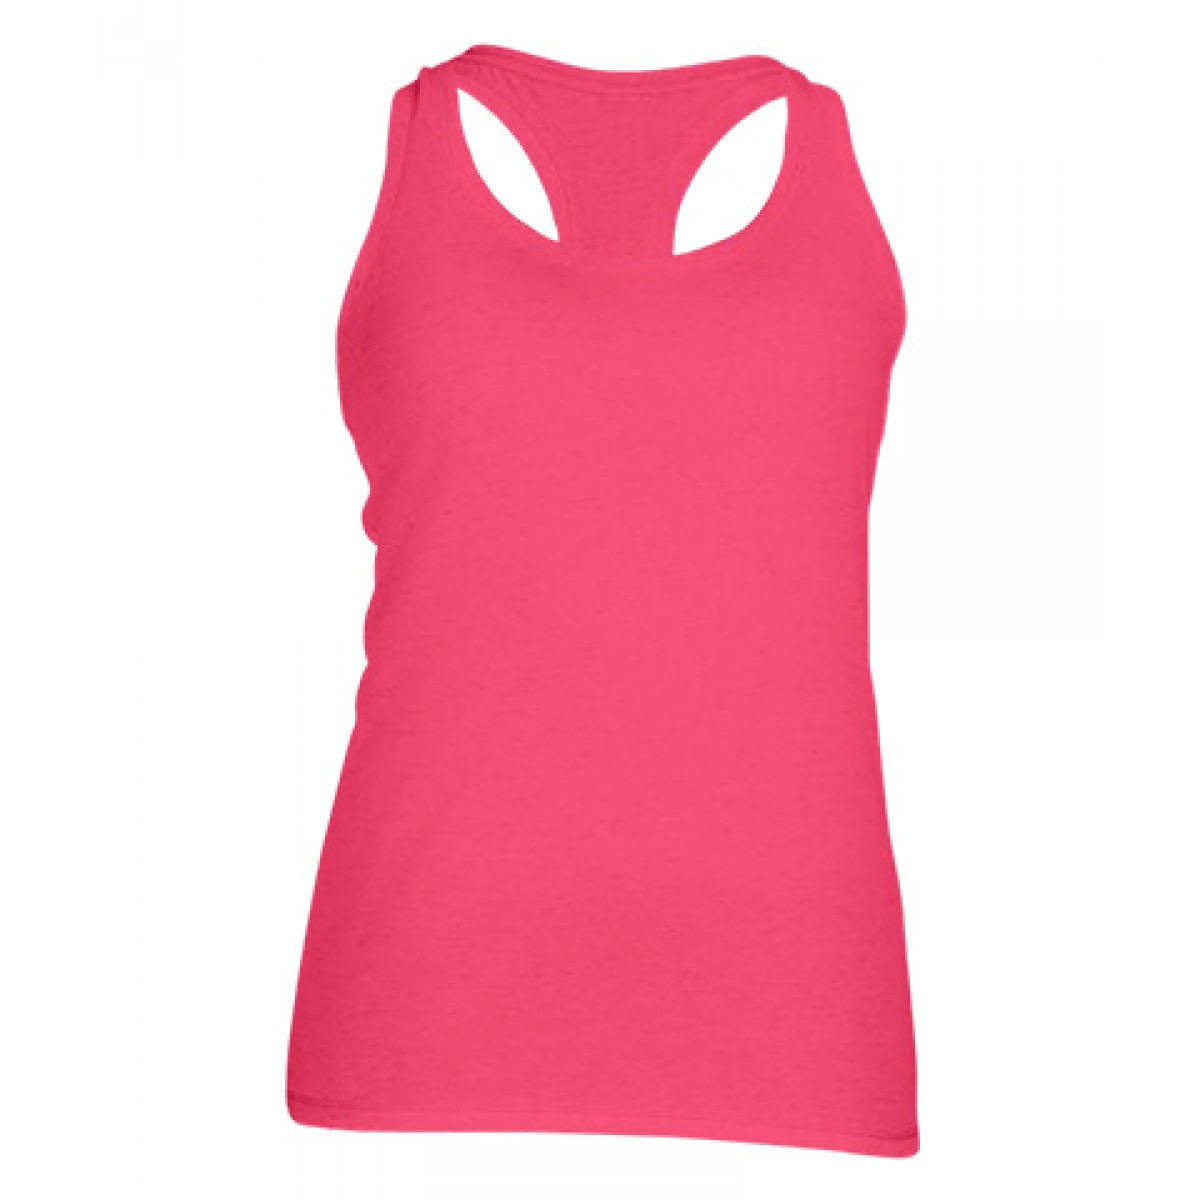 Ladies' Performance Racerback Tank-Safety Pink-S